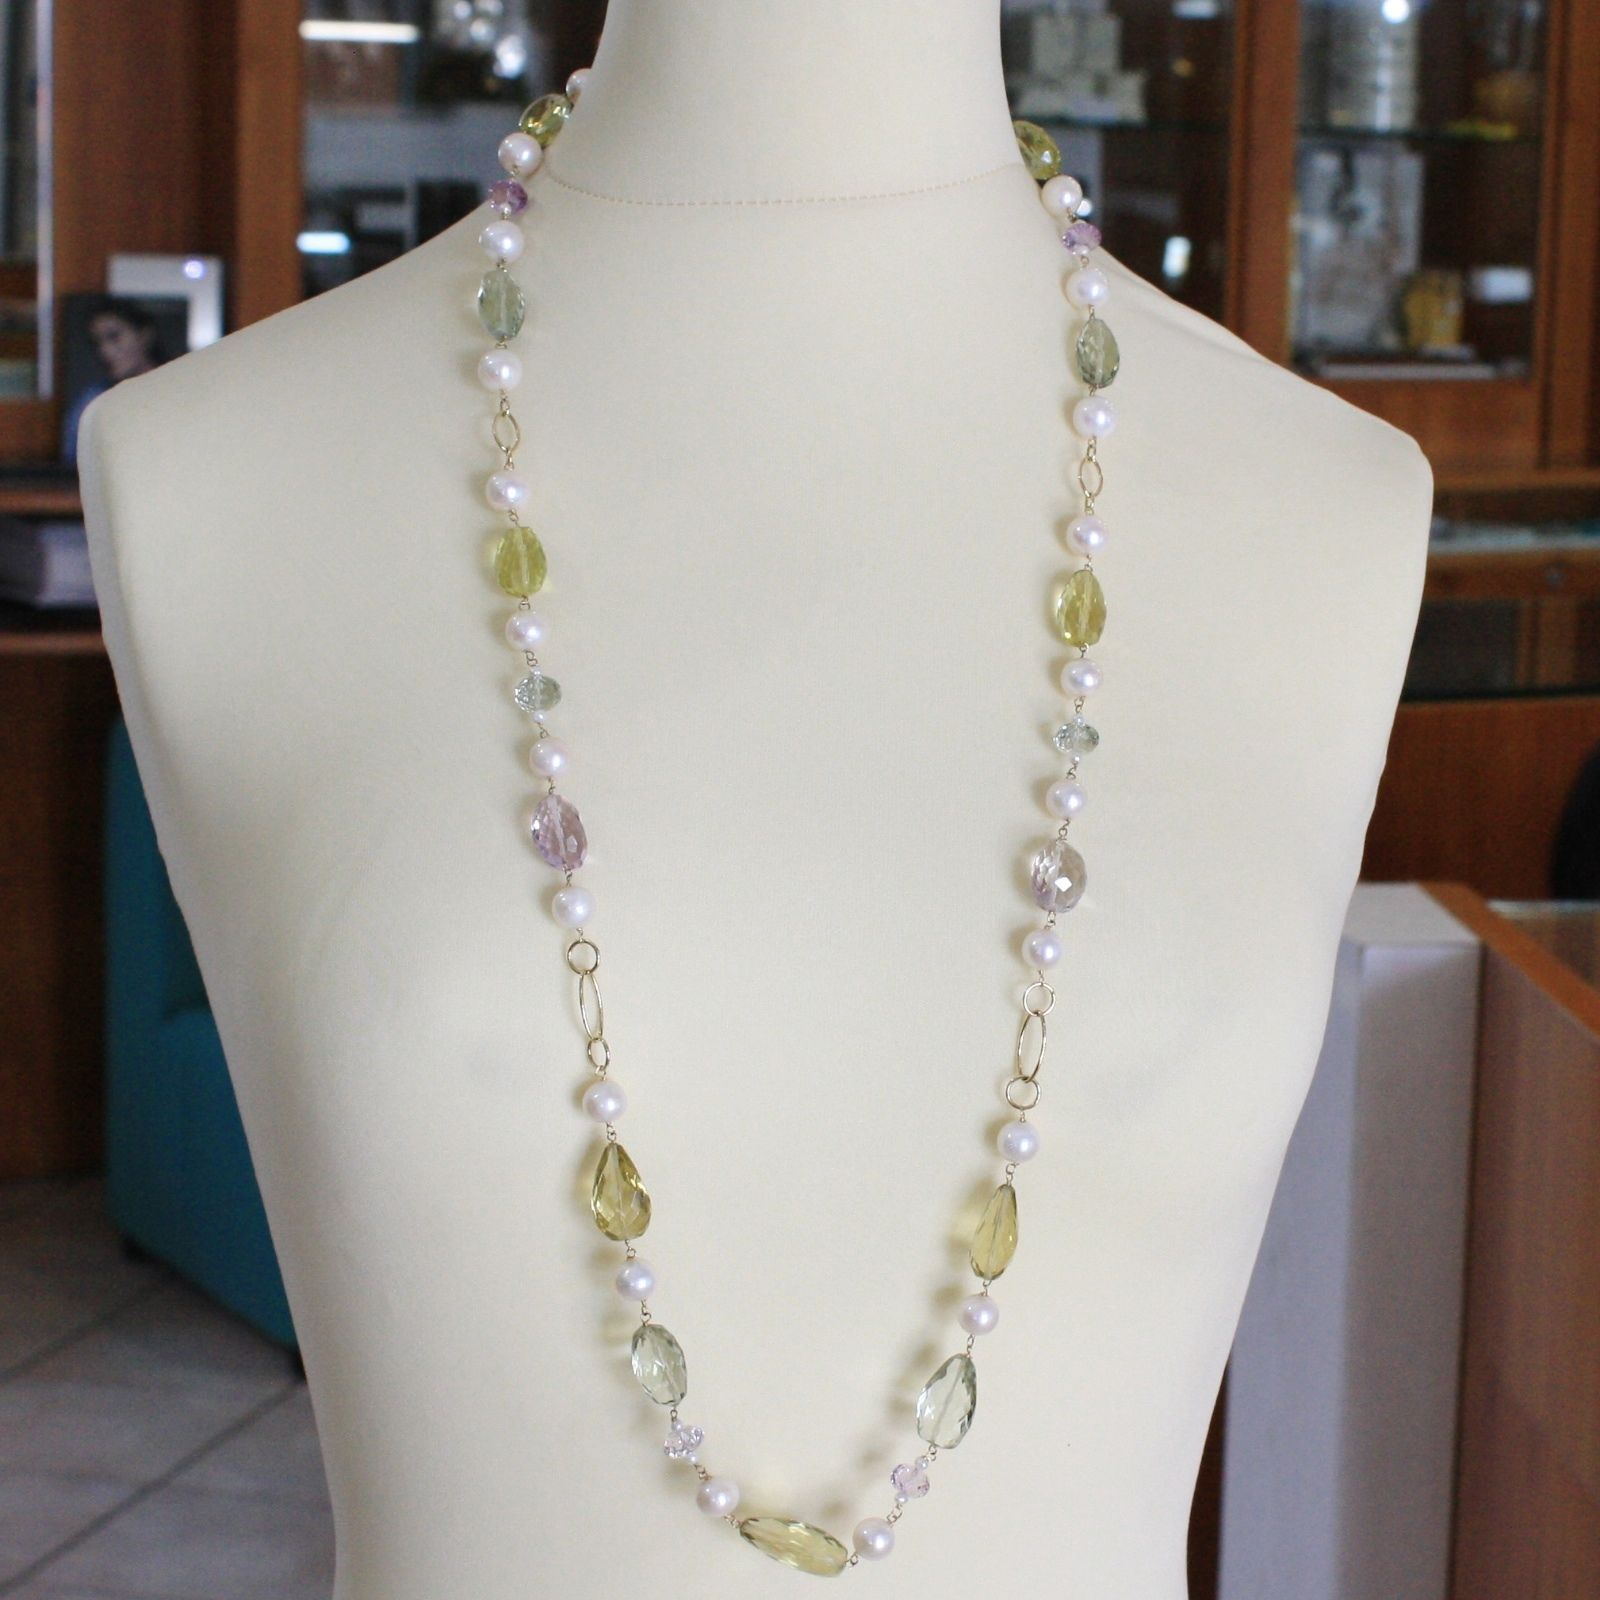 18K YELLOW GOLD LONG NECKLACE BIG LEMON QUARTZ AMETHYST, PRASIOLITE PEARL, 90 CM